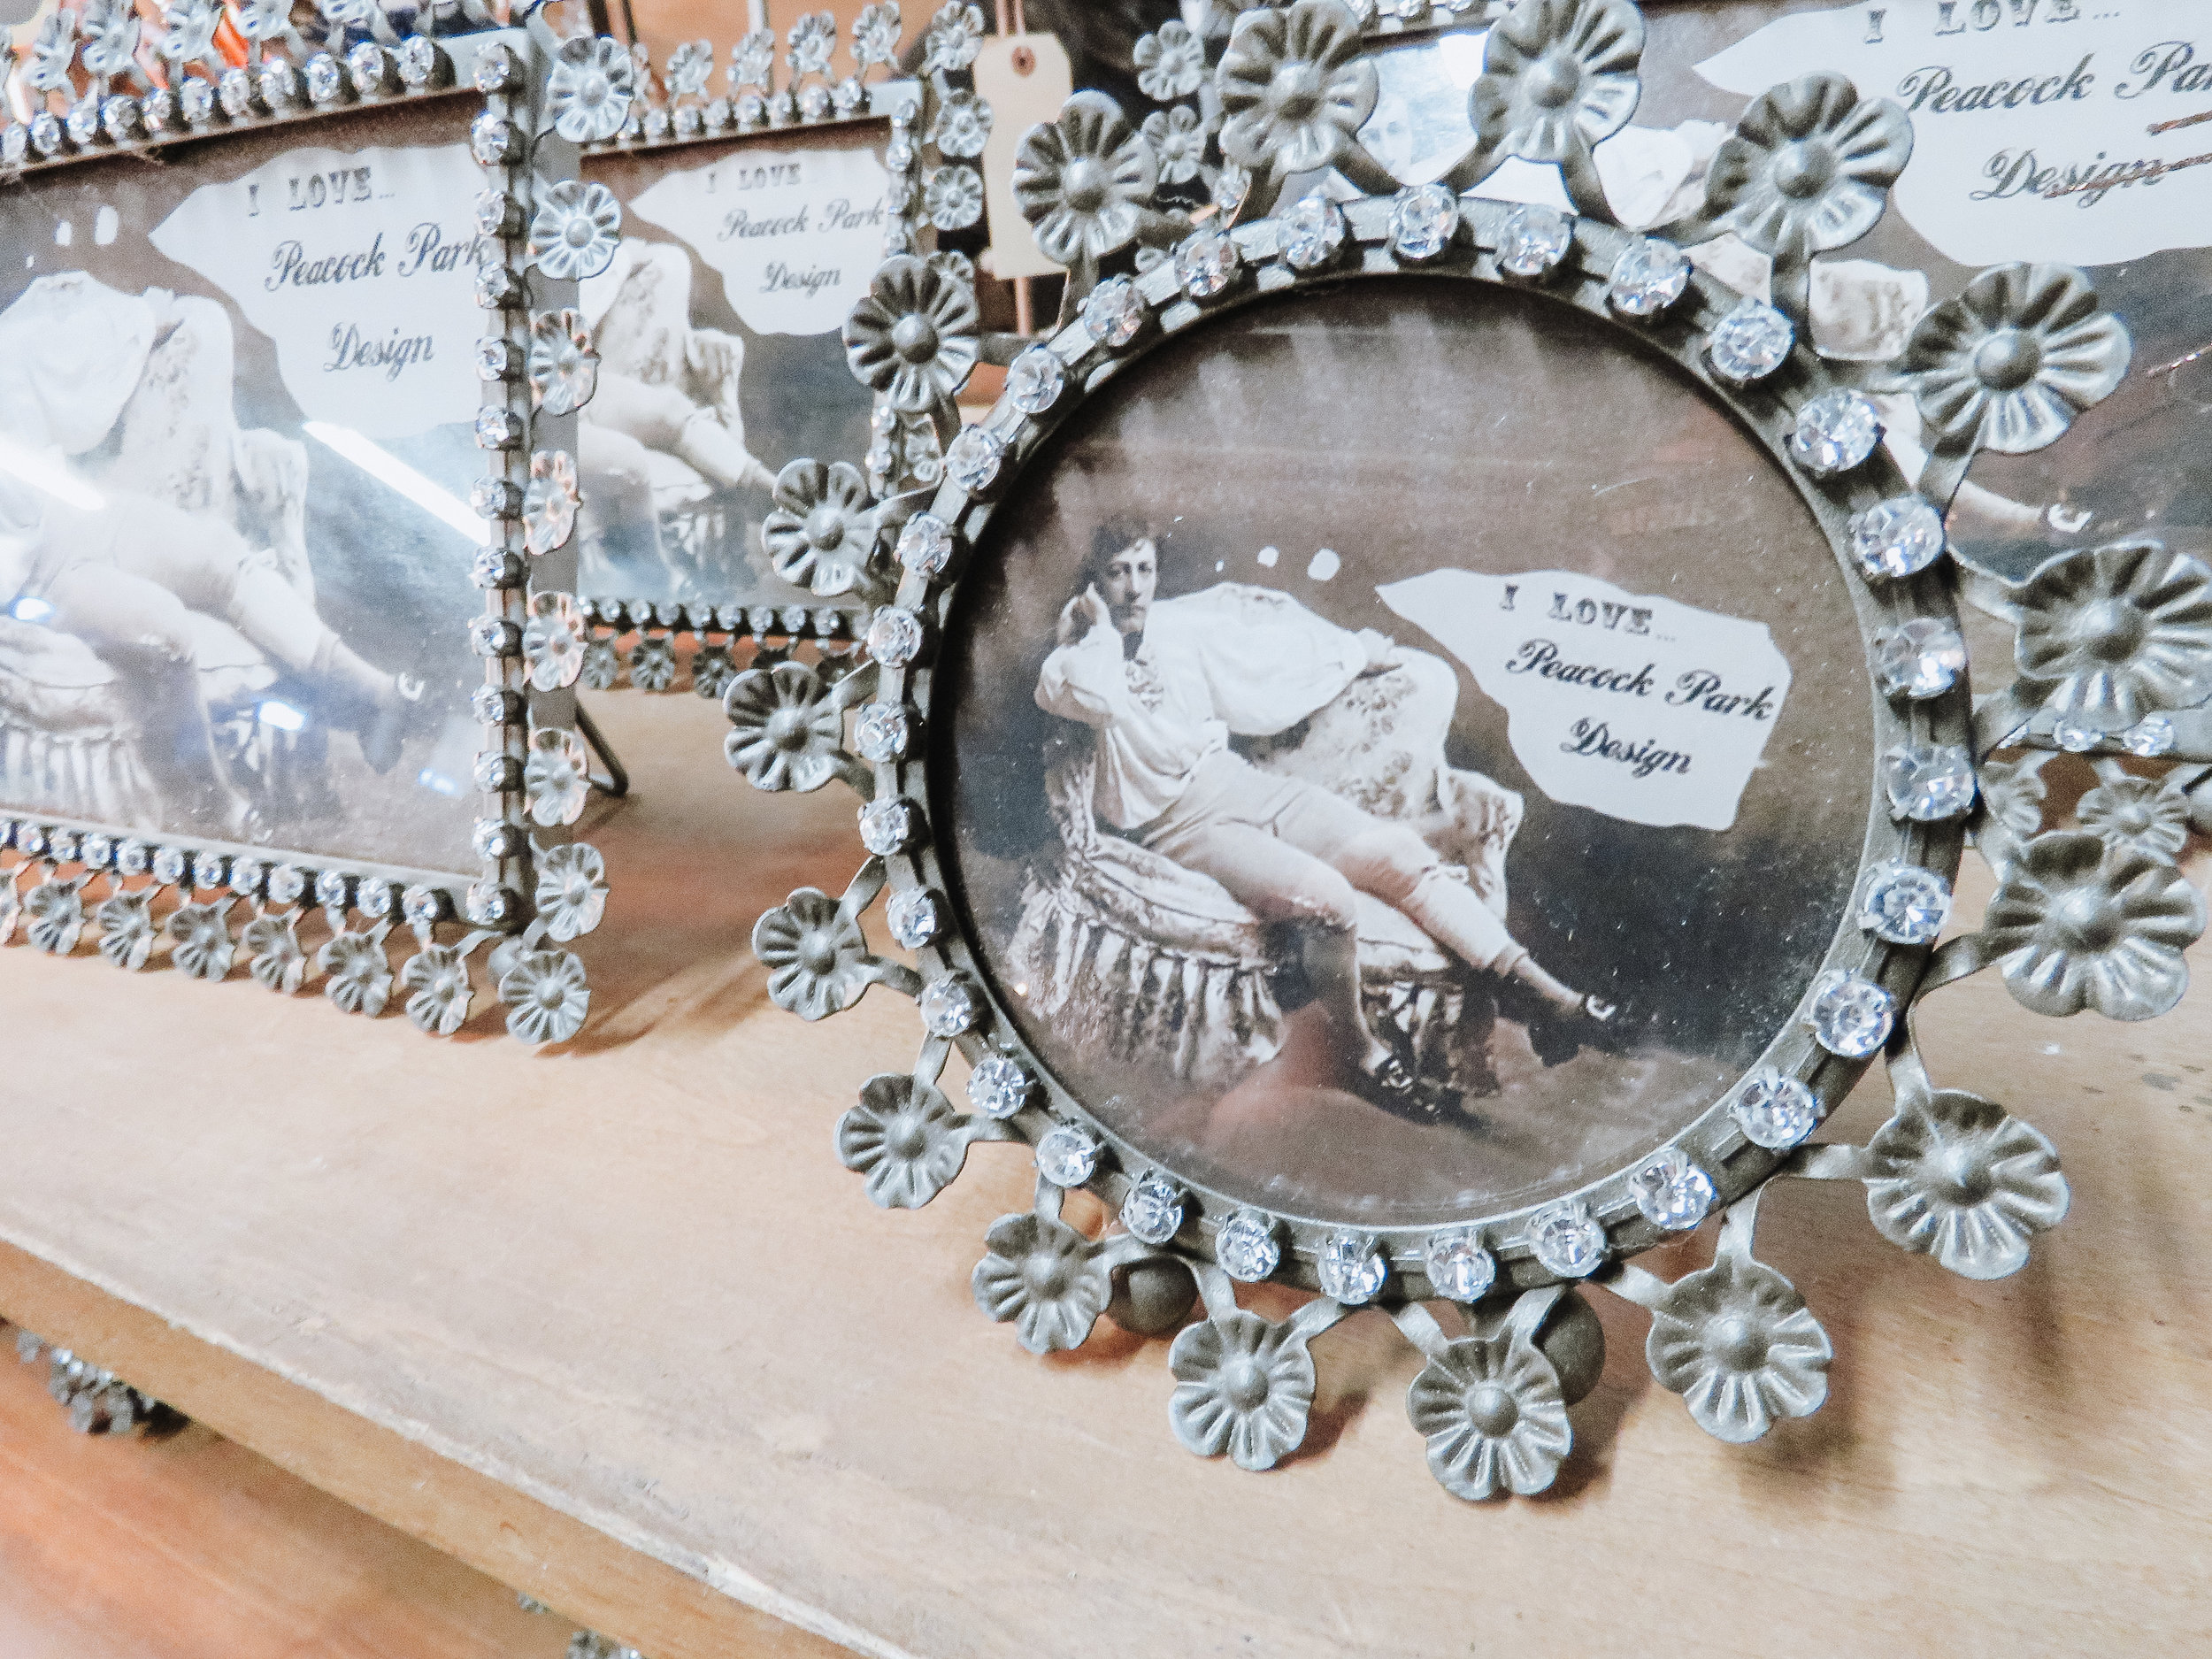 Picture Frames - Find a vintage frame to stick your recipient's photo in or write their name on some paper and stick it in the frame as a photo replacement. Attach with some string, and you're in business!